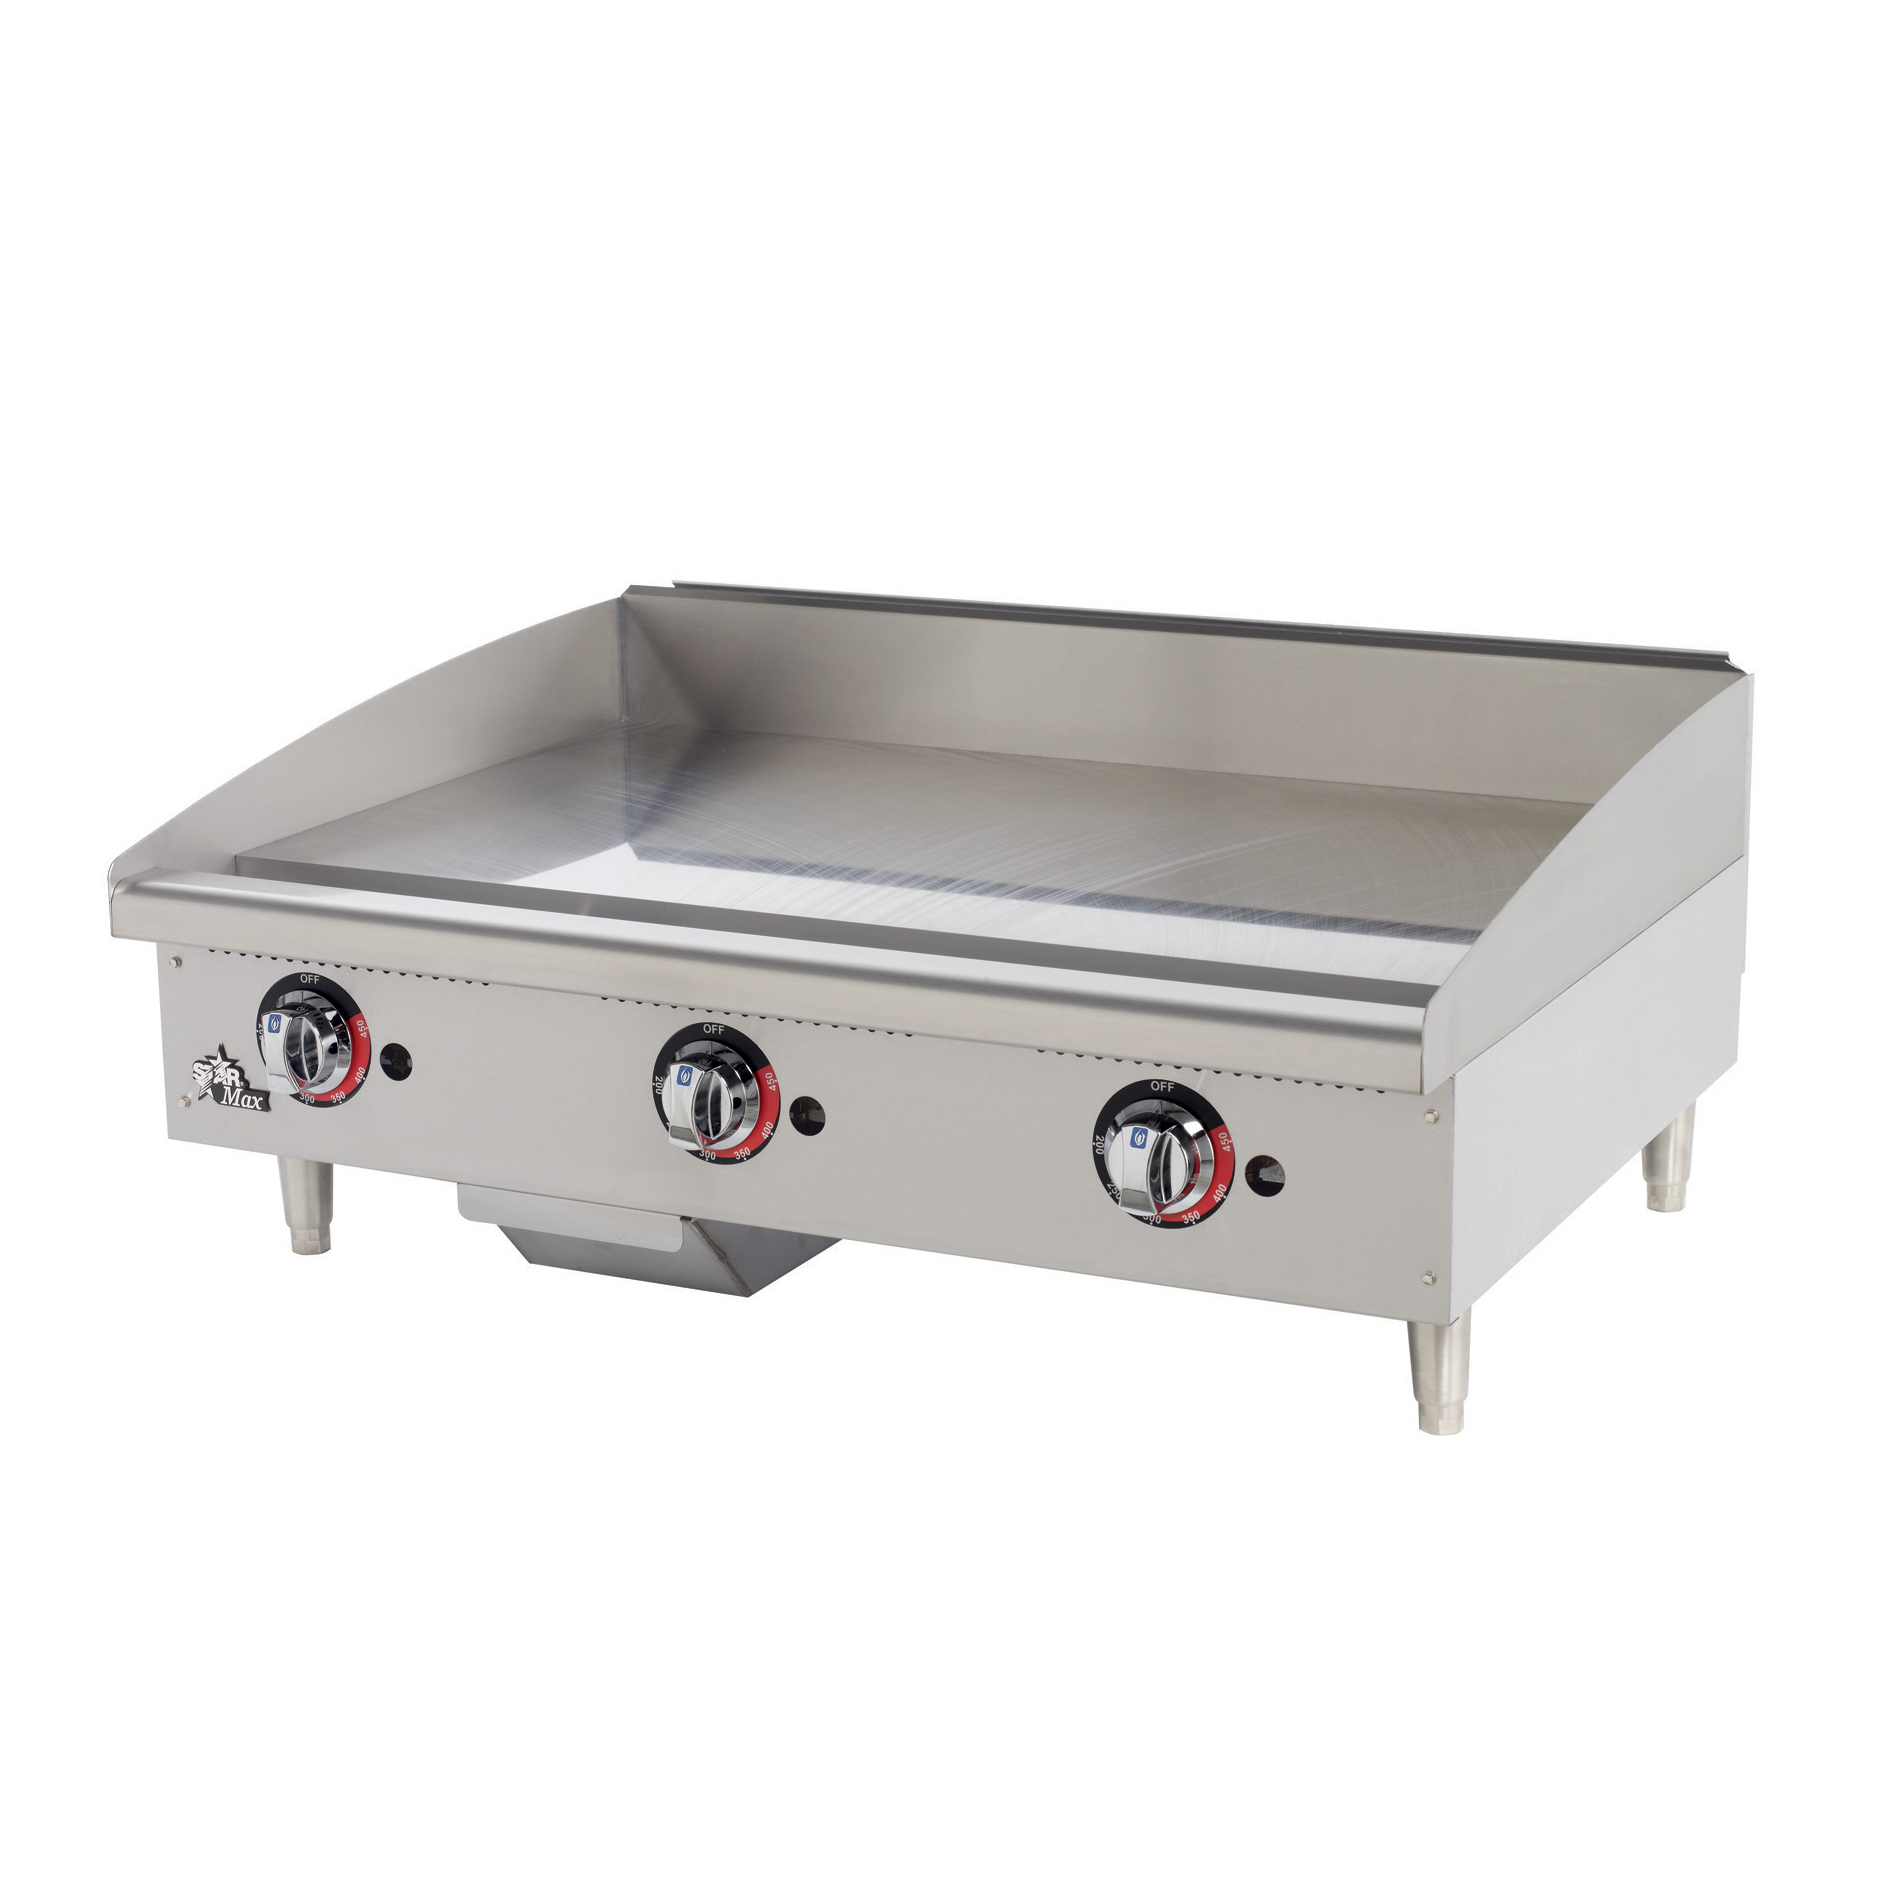 Star 636TSPF griddle, gas, countertop